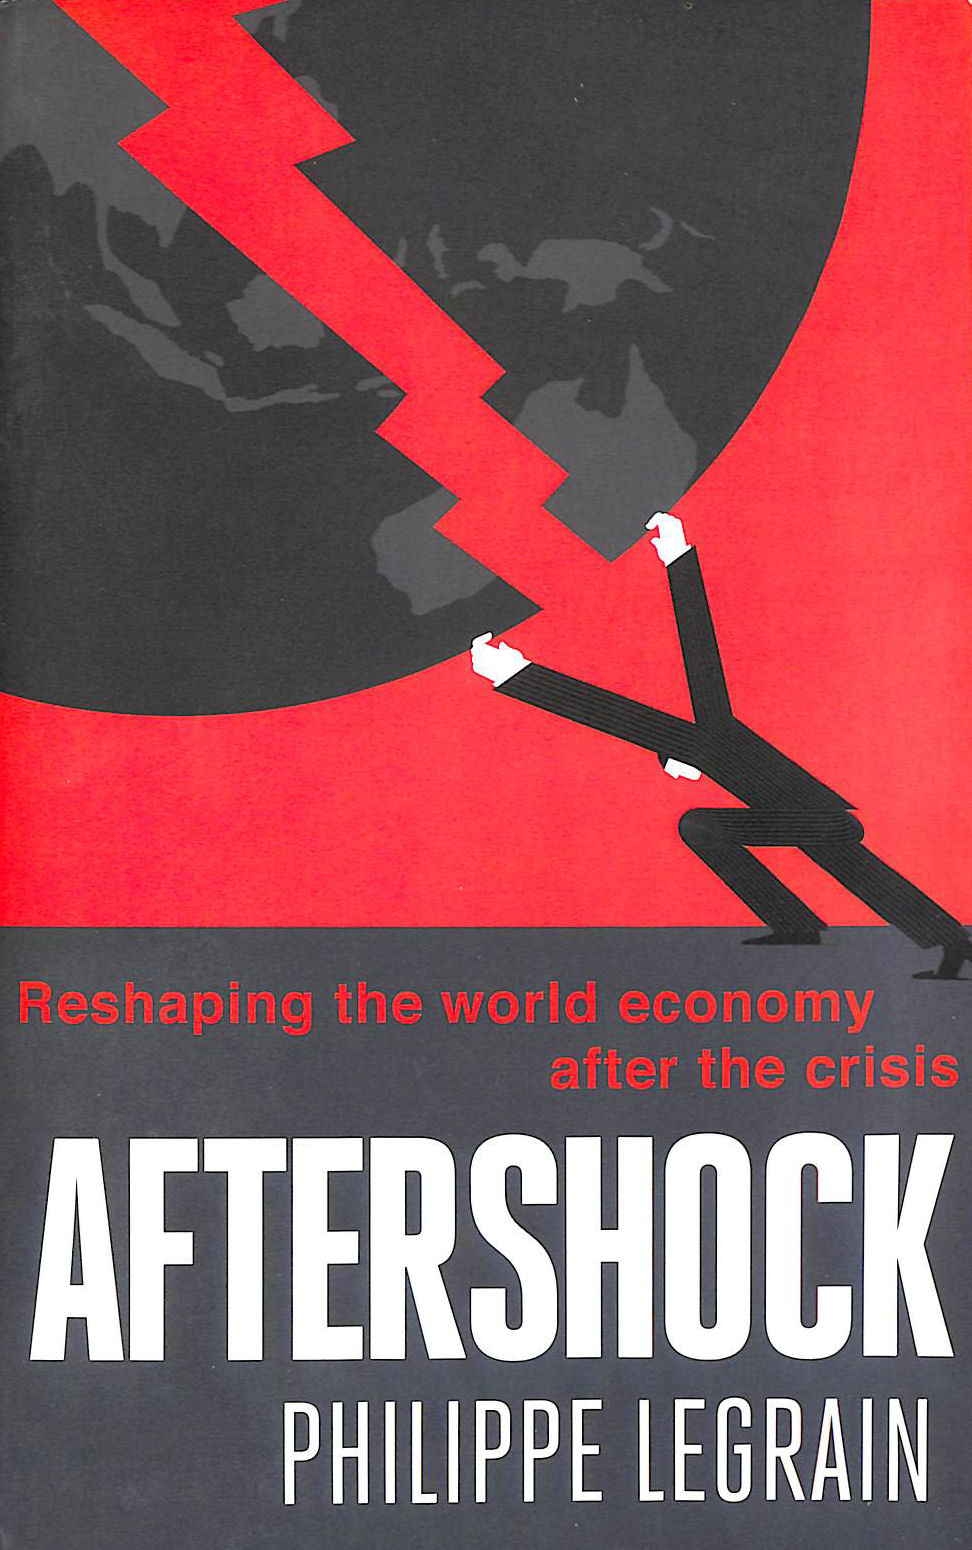 Image for Aftershock: Reshaping The World Economy After The Crisis